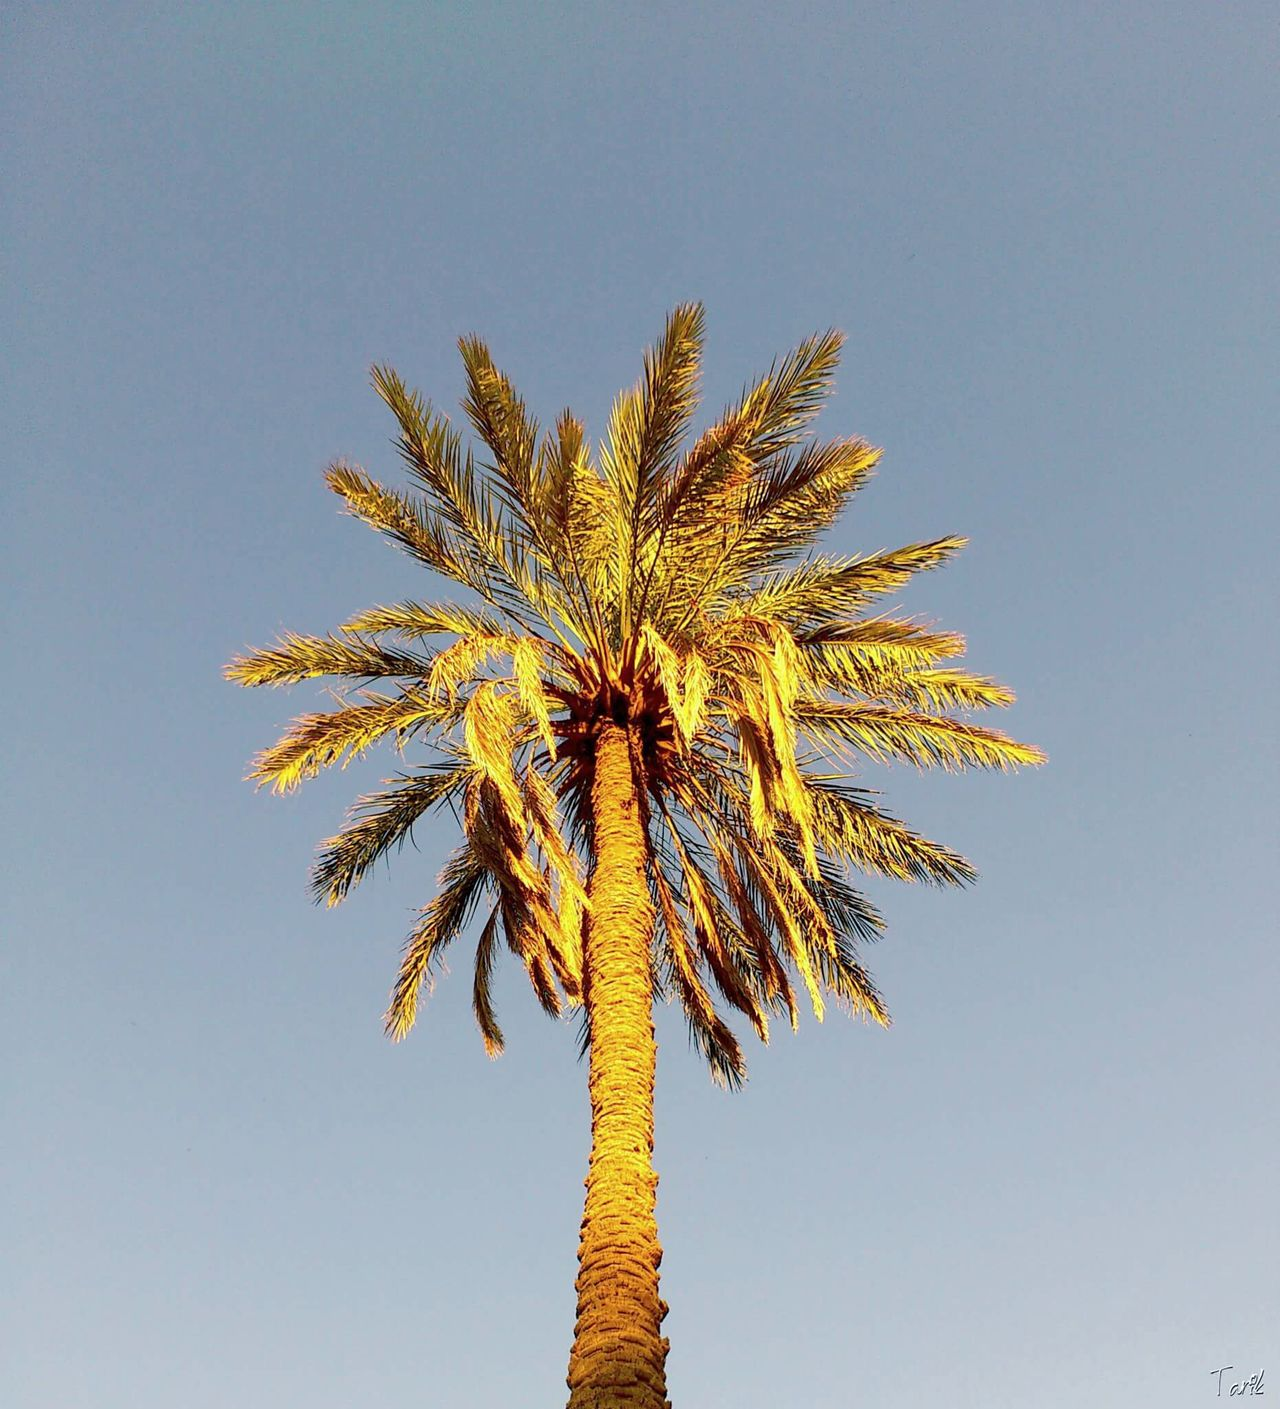 Low Angle View Sky Tree Palm Tree No People Outdoors Day Nature Summer Beauty In Nature Morocco Colors Tranquility Oneplus2 Sun Dates Datesfruits Figuig